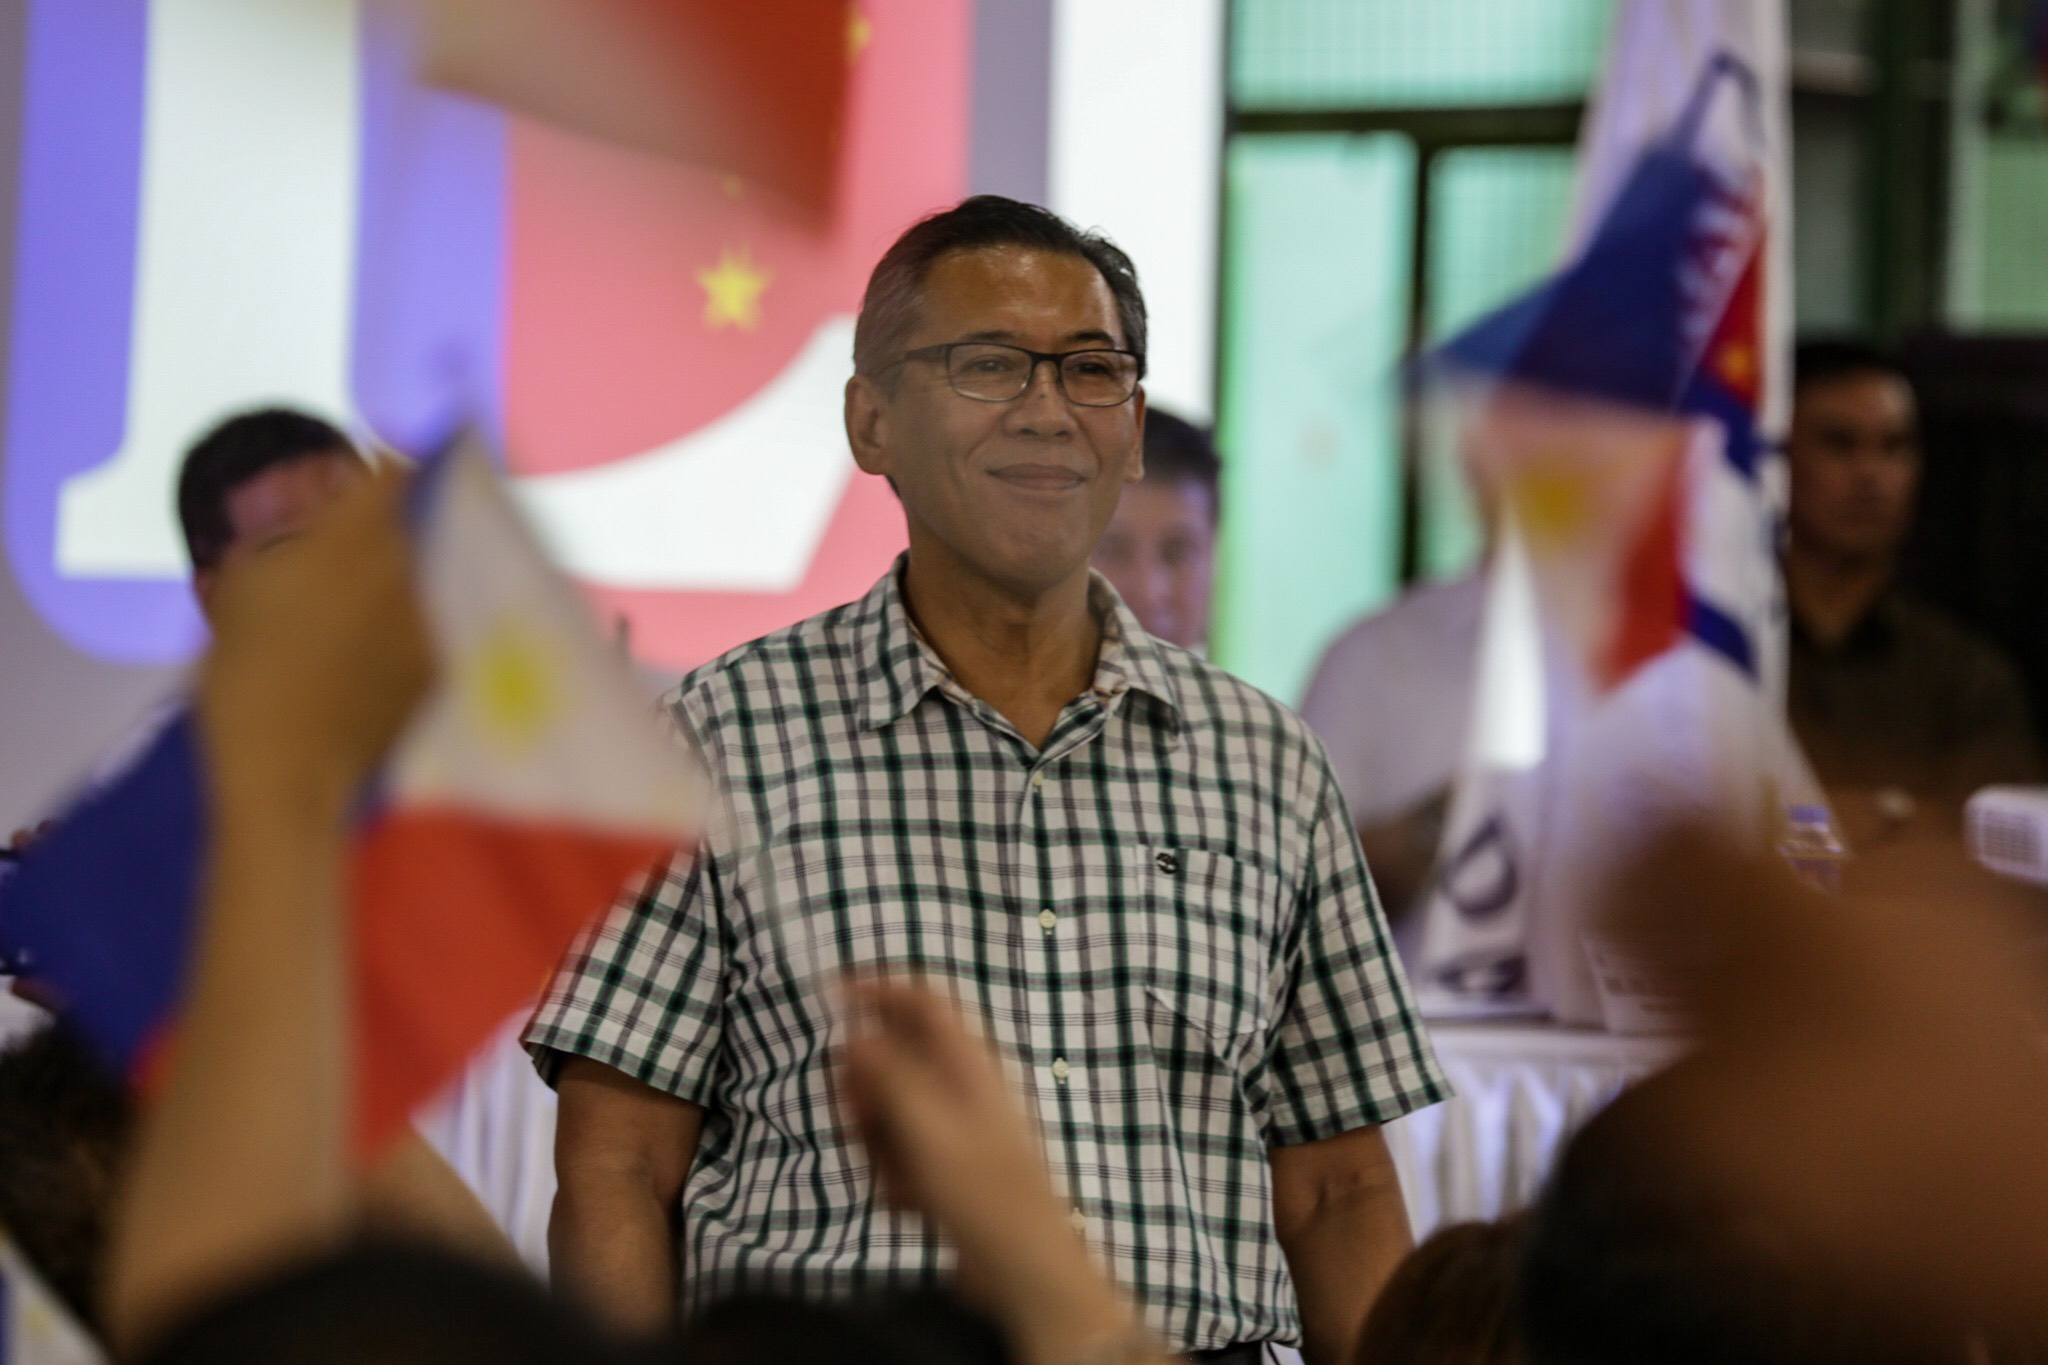 A NEW ARENA. Human rights lawyer Chel Diokno wants to bring the fight for rule of law to a different arena. Photo by Maria Tan/Rappler